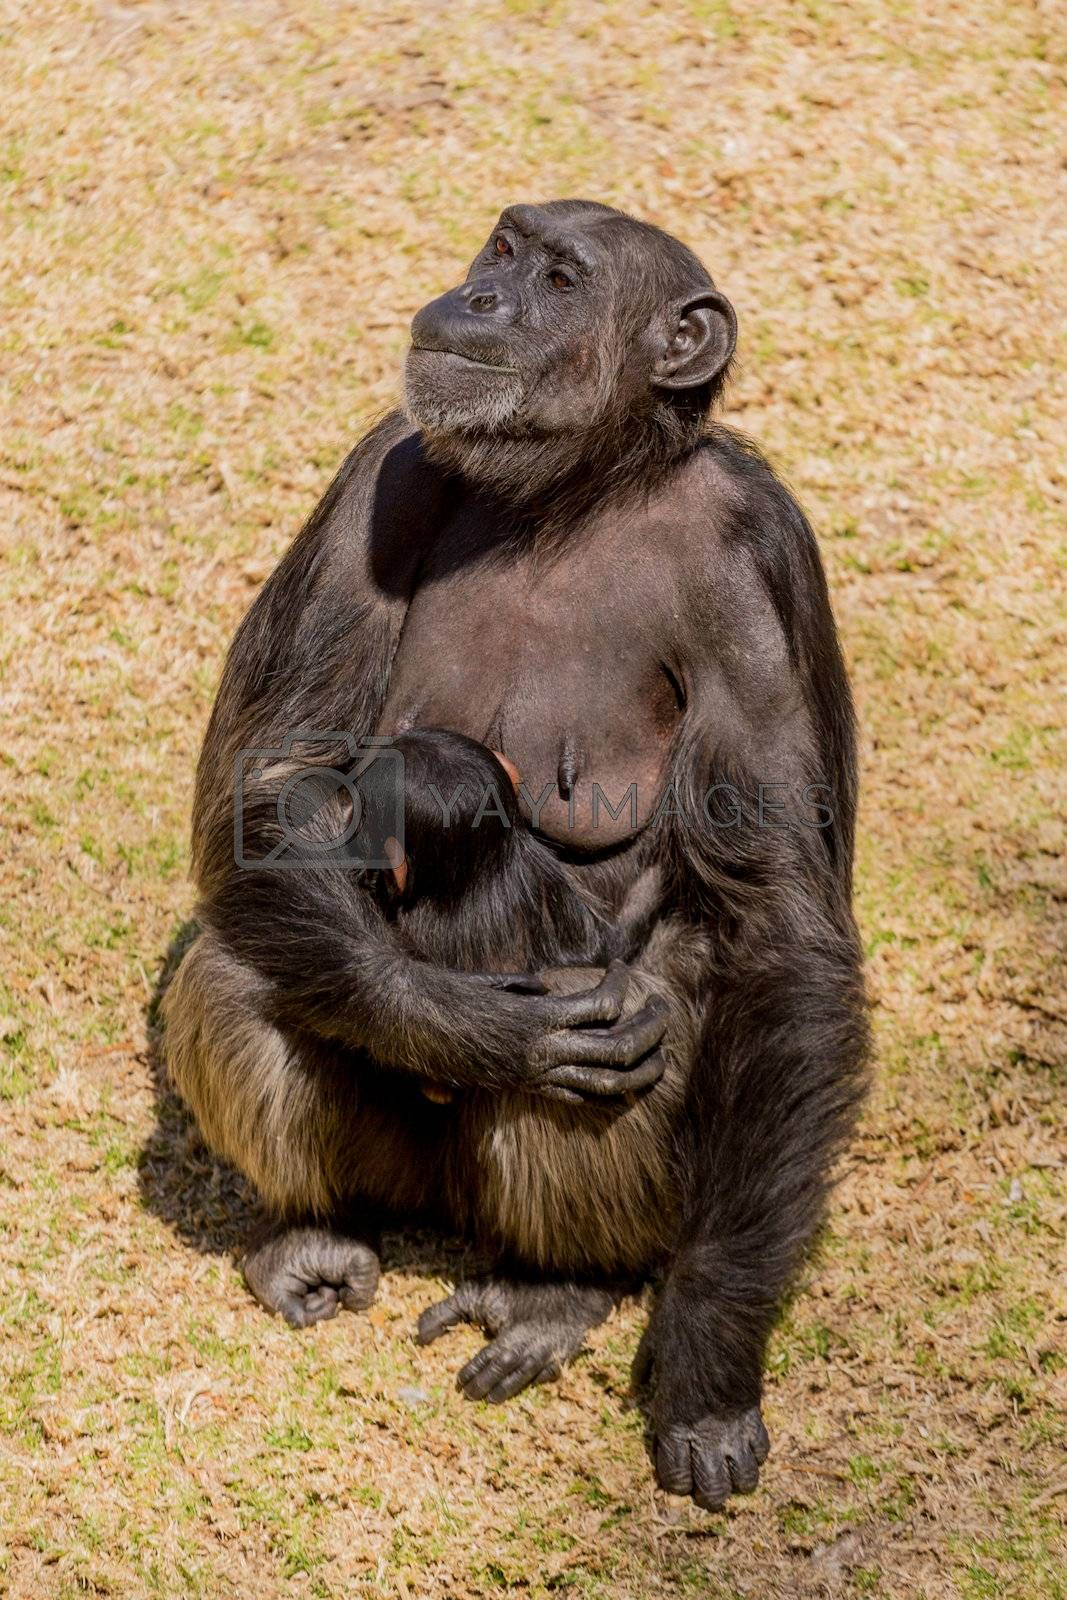 A female adult chimp sitting down and cuddling her baby